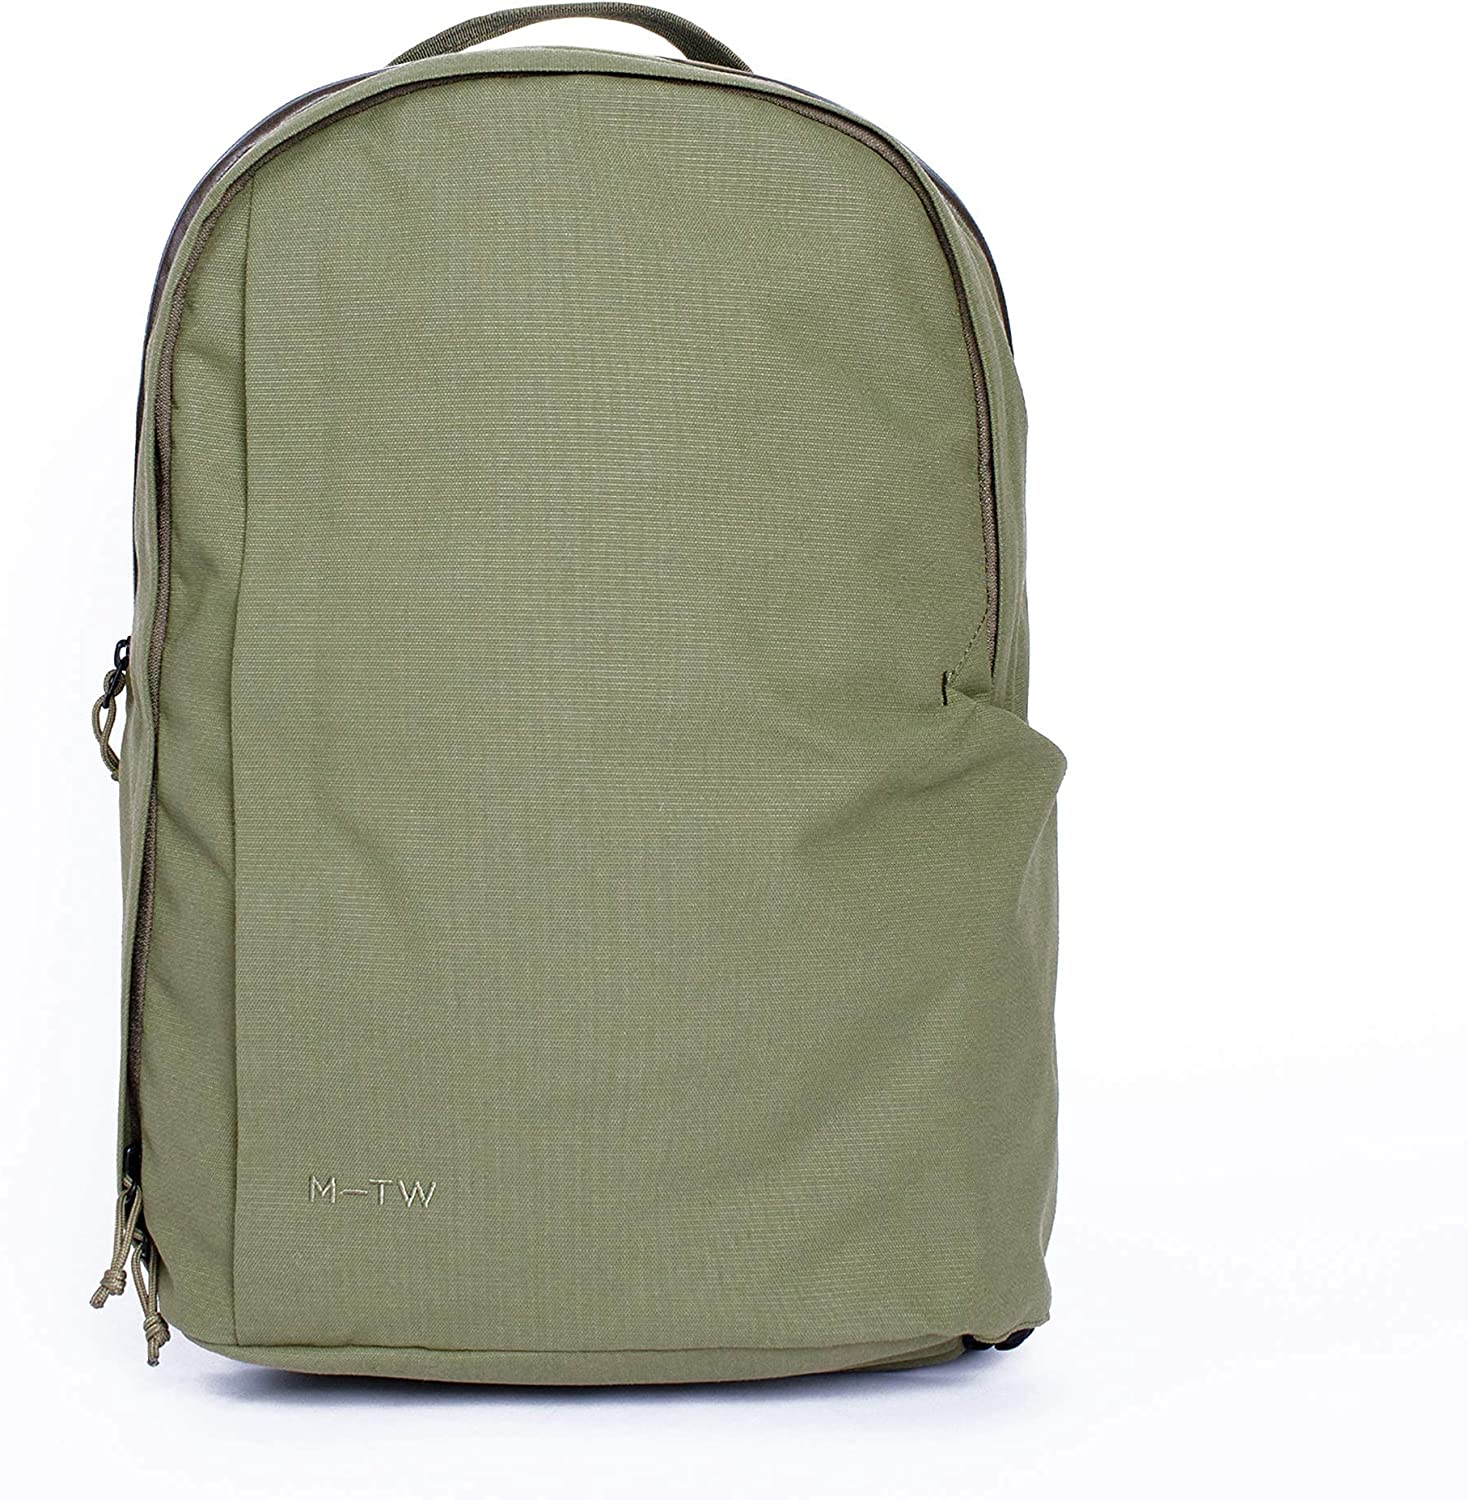 New Free Shipping MTW Backpack Max 49% OFF 17L 21L